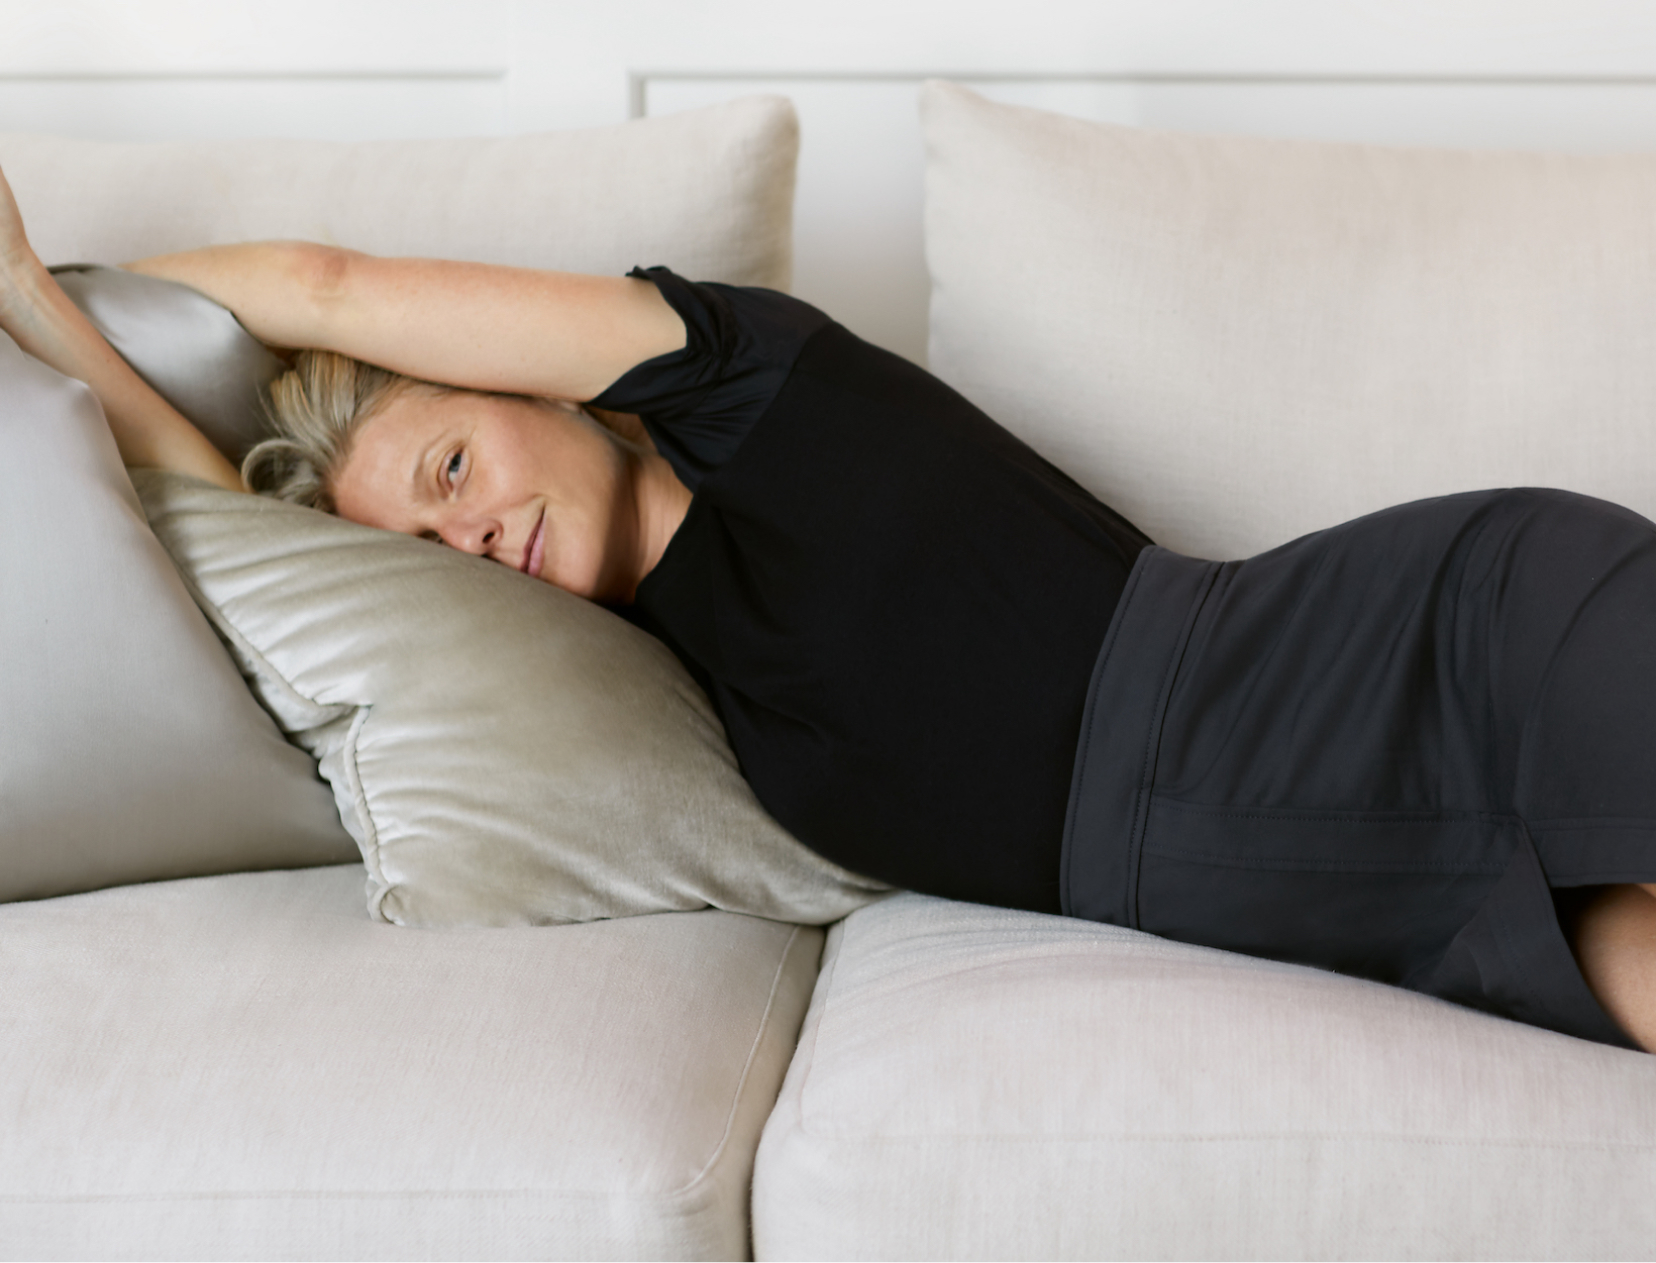 Gwyneth on Orgasms before Bed and Her Sleep Routine